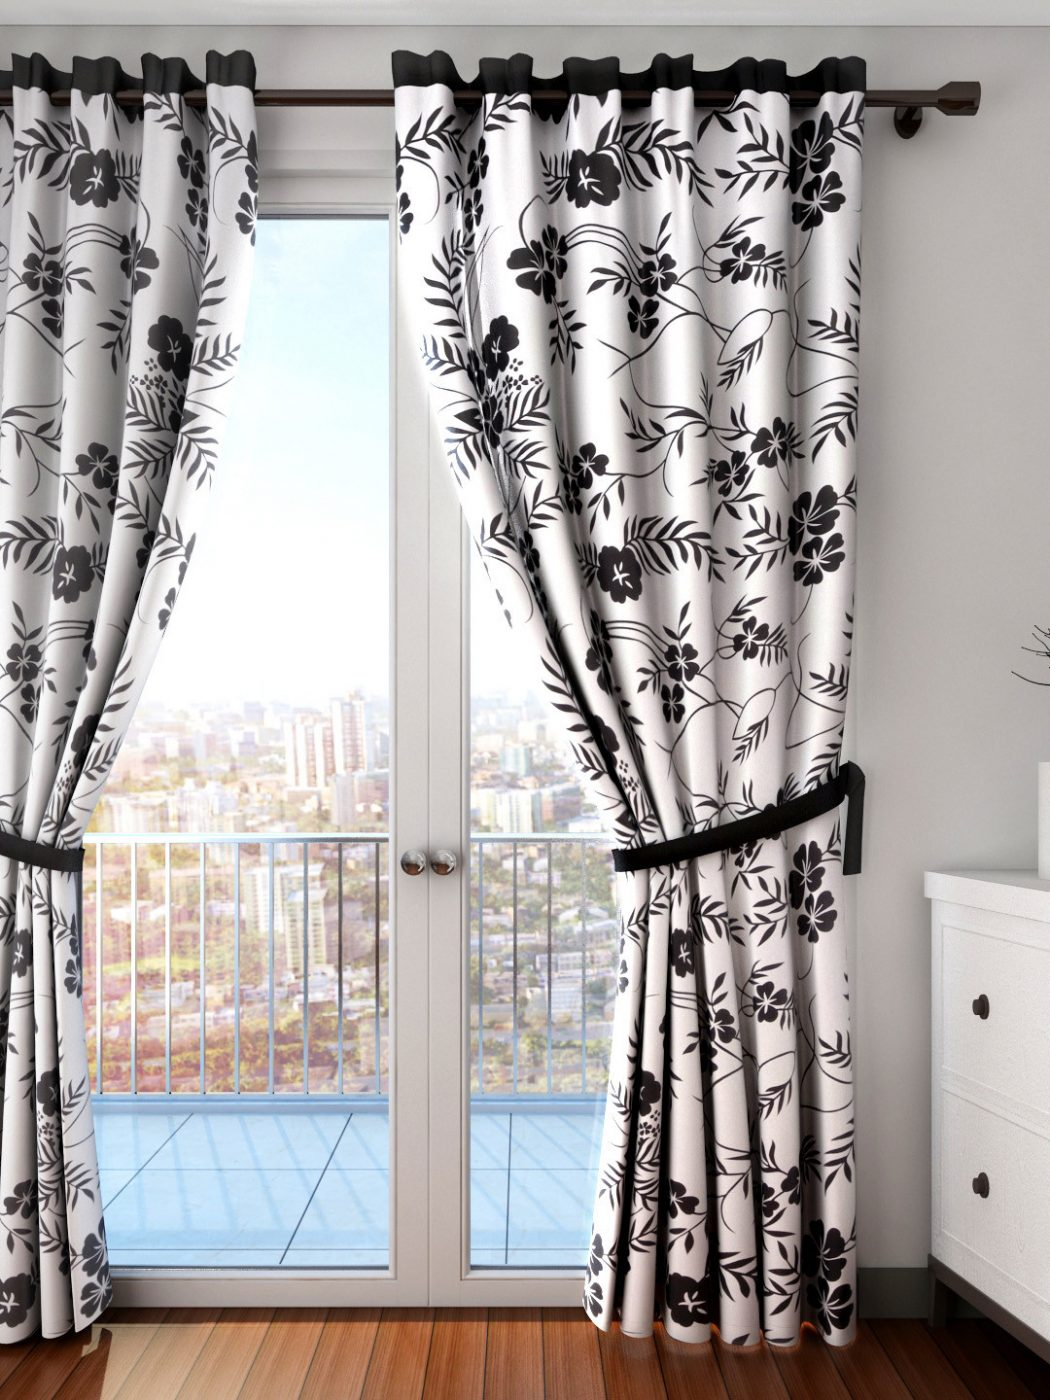 11465451719574-SWAYAM-White-Black-Single-Floral-Print-Long-Door-Curtain-7831465451719436-1 20+ Hottest Curtain Design Ideas for 2020